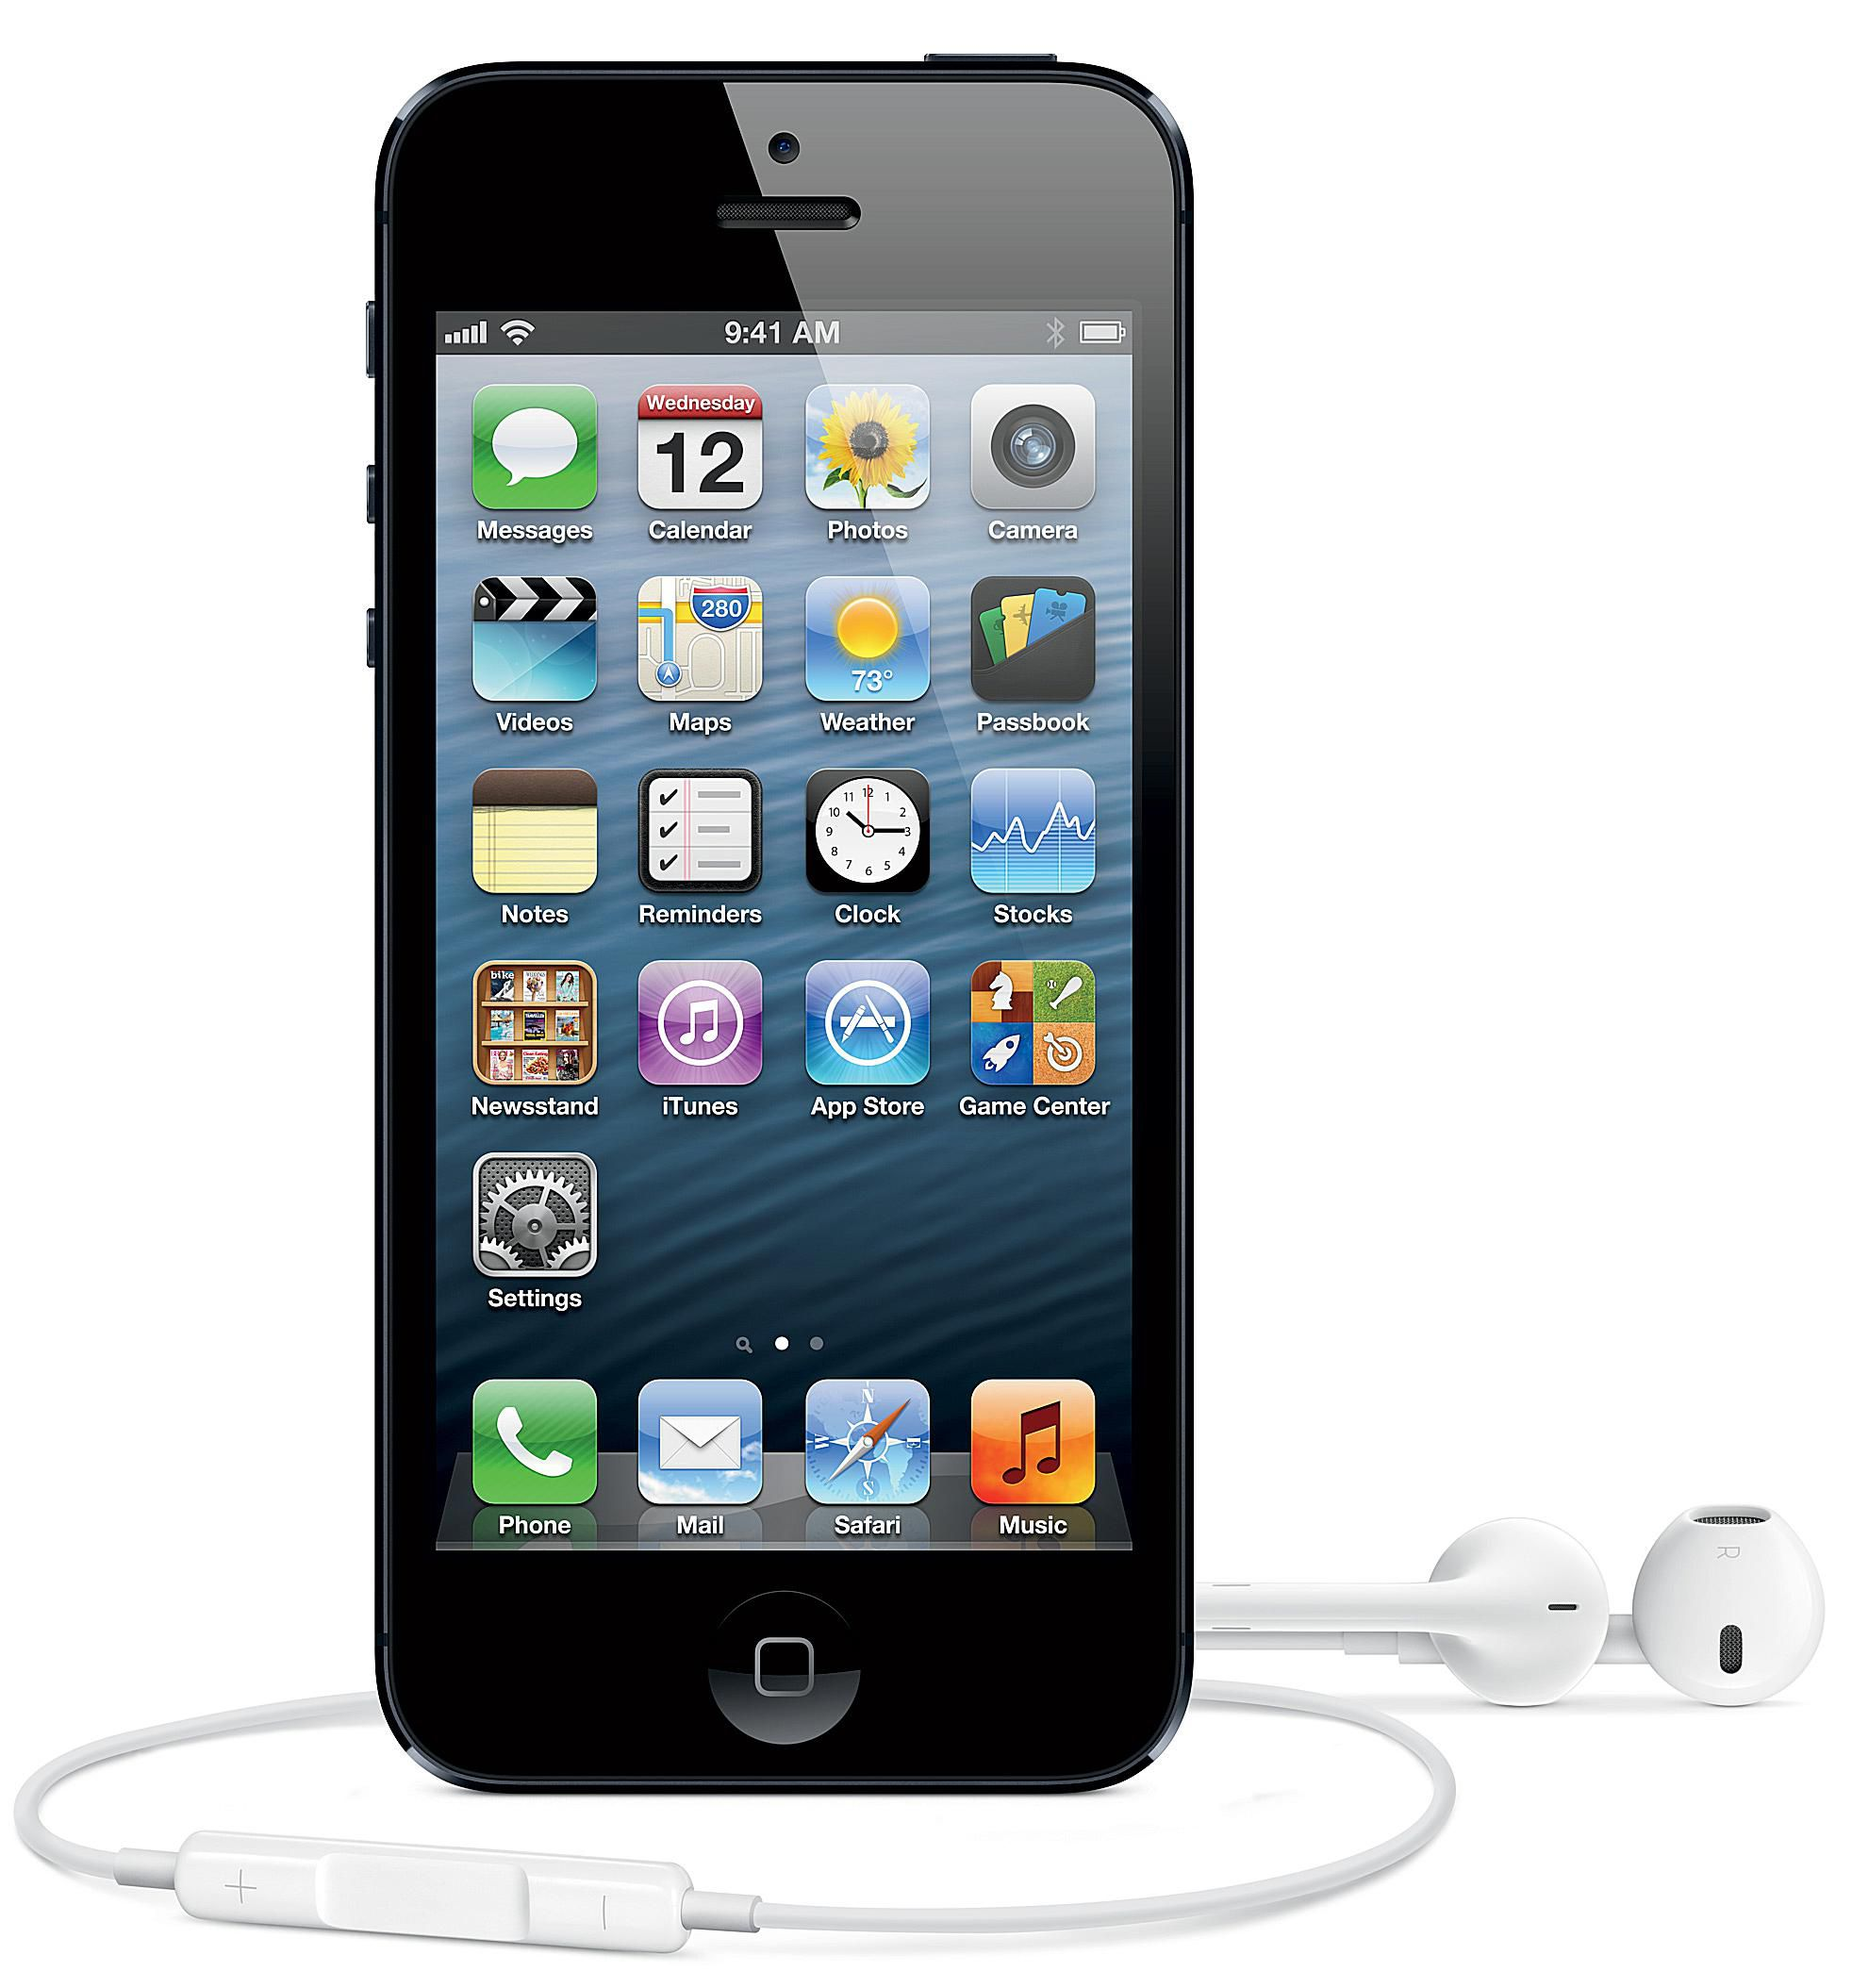 A1203 quad band gsm cellular phone user manual iphone ug for fcc.